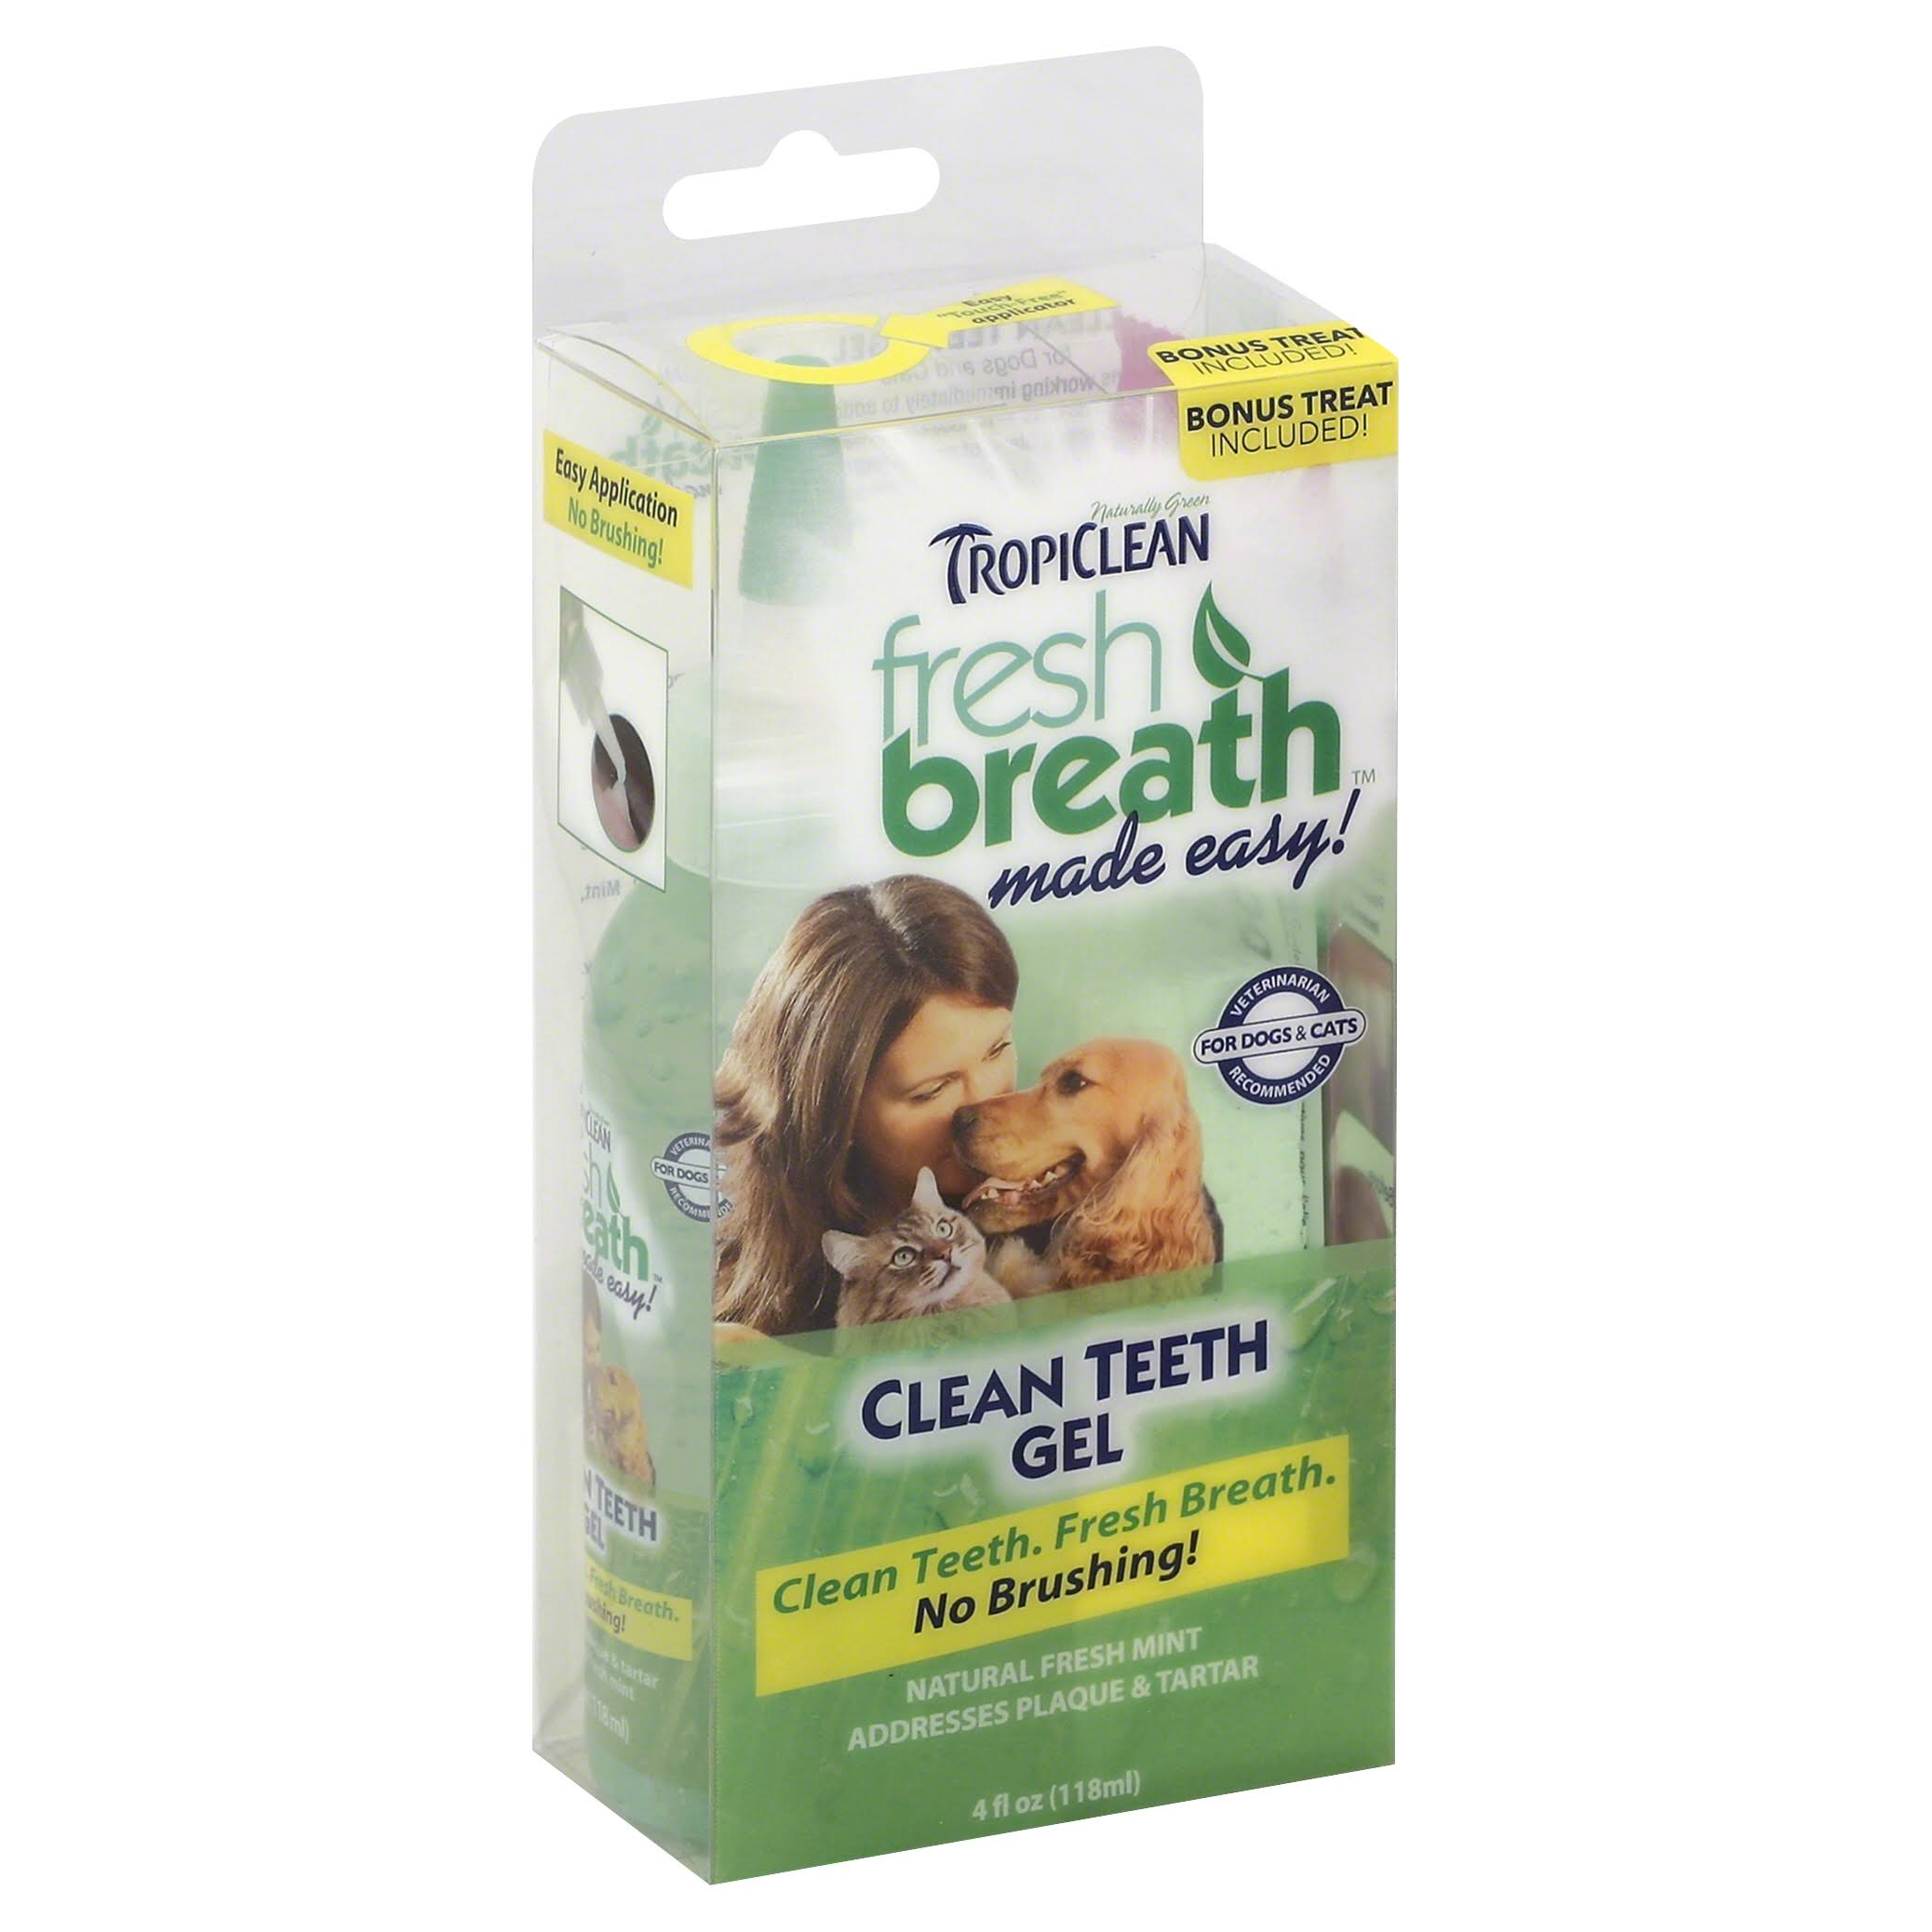 Tropiclean Fresh Breath Clean Teeth Gel - 4 fl oz